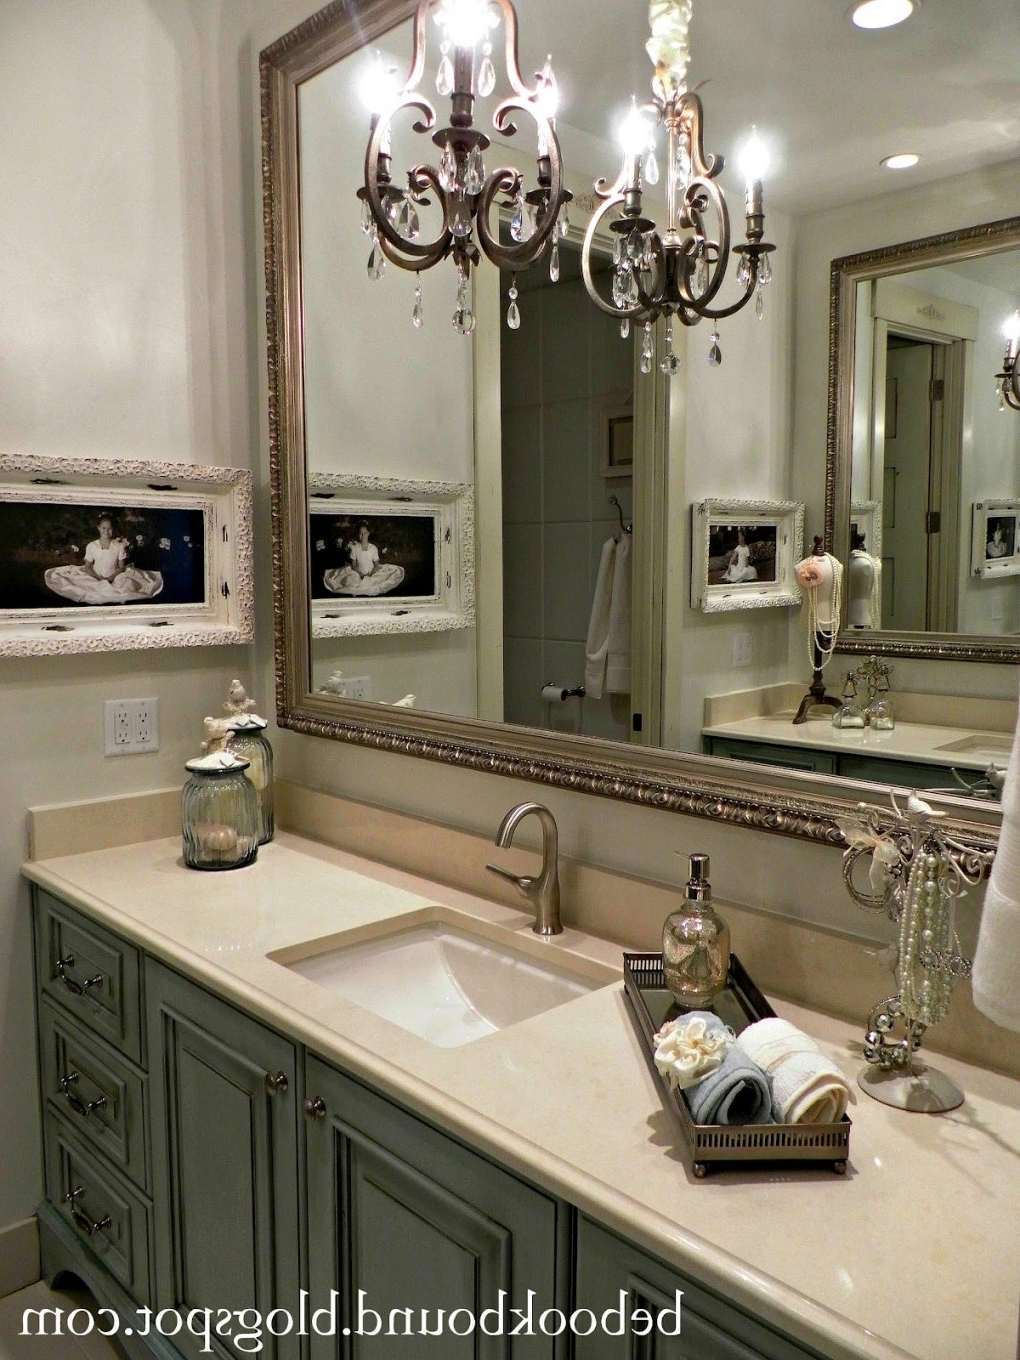 Home Design & Decorating Ideas (View 18 of 20)